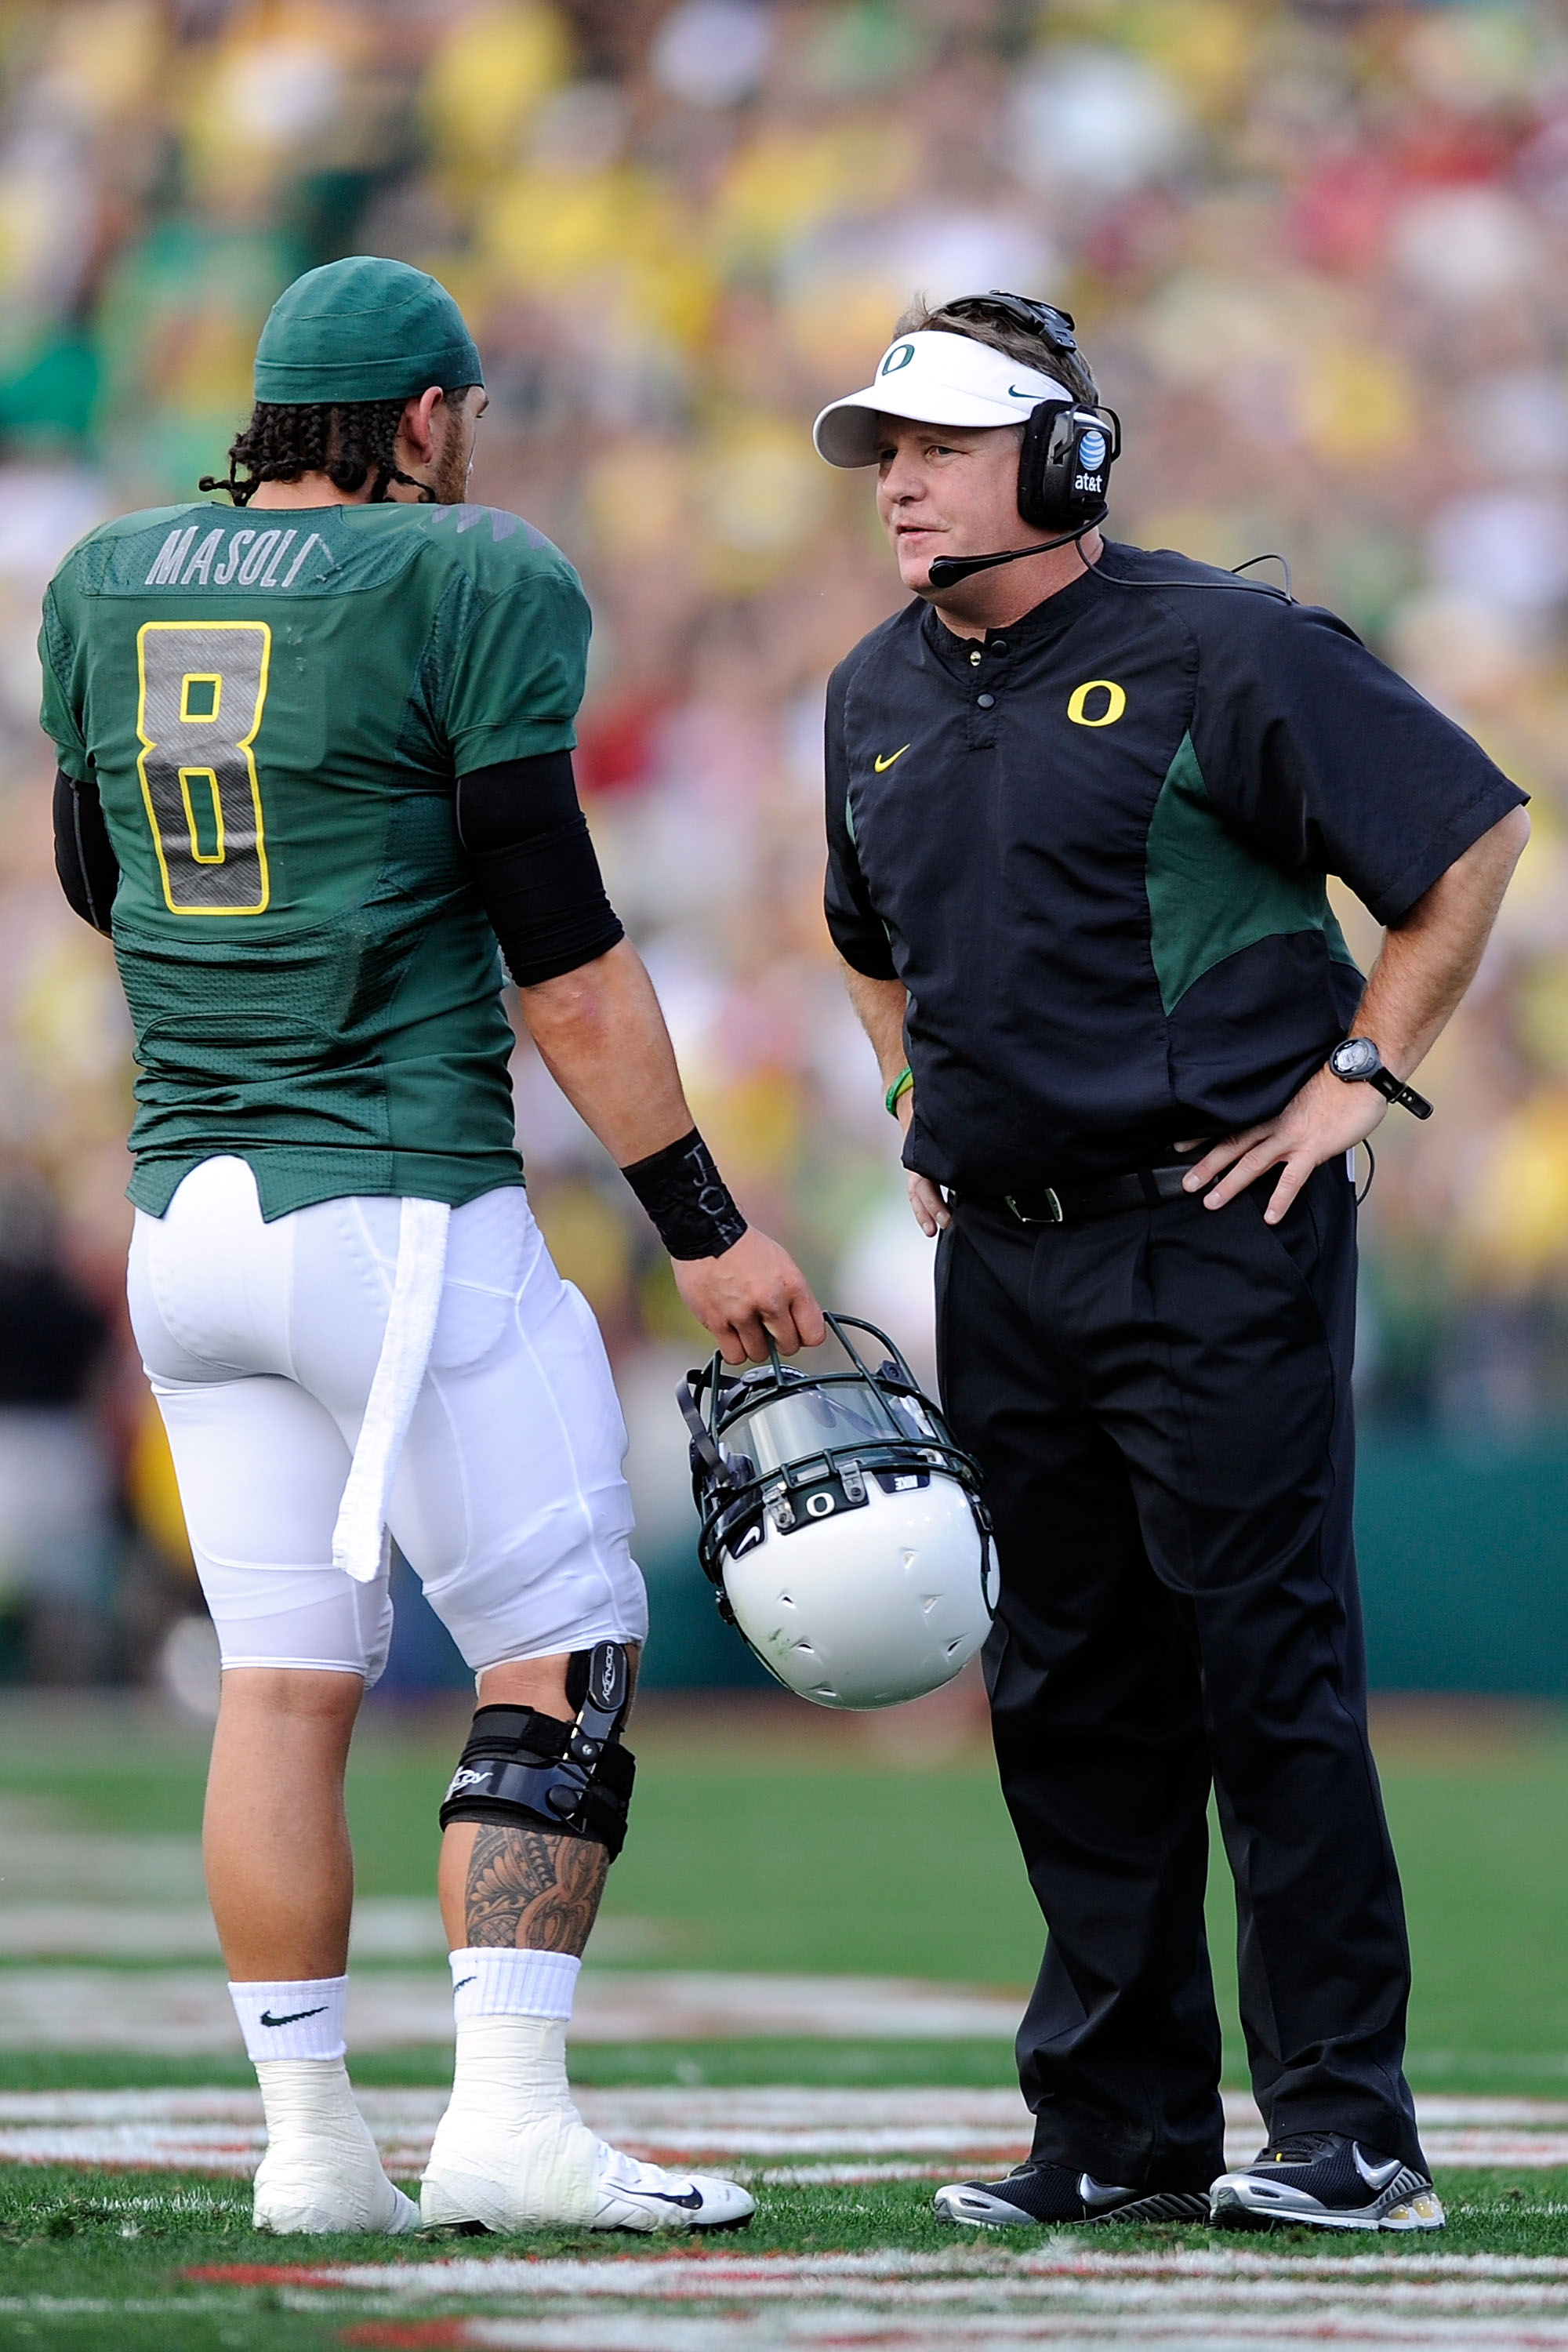 PASADENA, CA - JANUARY 01:  Head coach Chip Kelly of the Oregon Ducks talks with quarterback Jeremiah Masoli #8 during the game against the Ohio State Buckeyes at the 96th Rose Bowl game on January 1, 2010 in Pasadena, California.  (Photo by Kevork Djanse